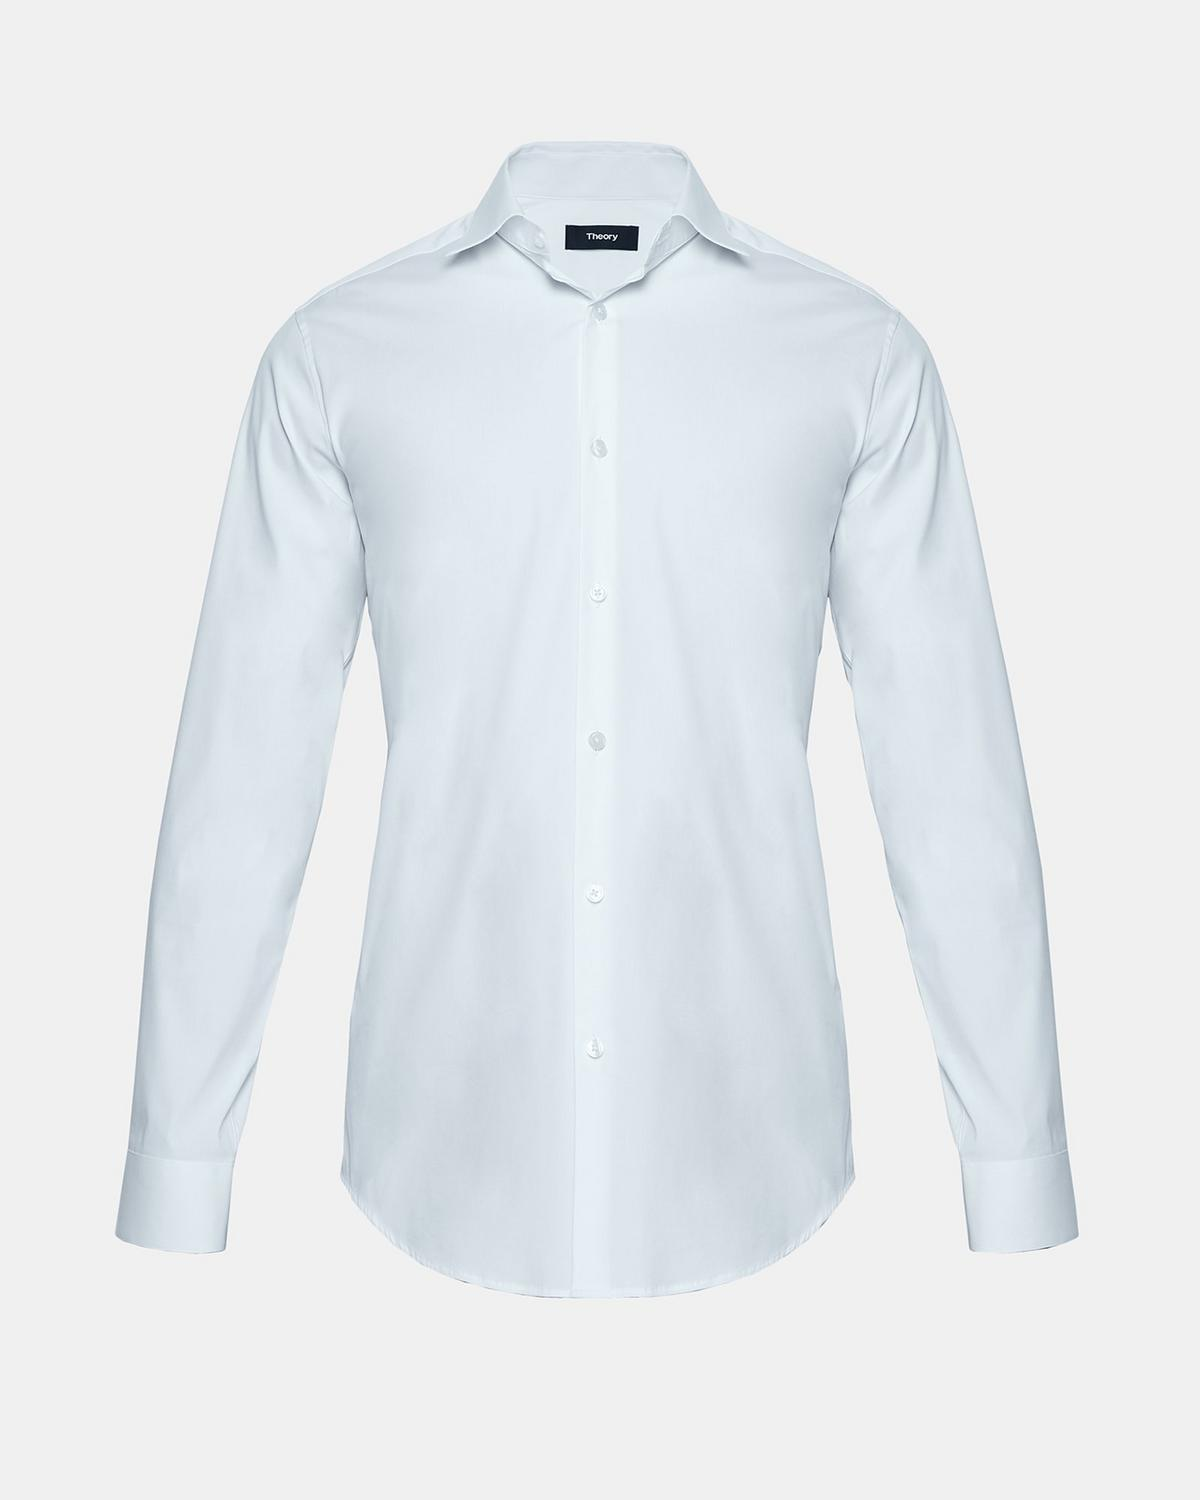 8ed4eb455eb Stretch Cotton Slim-Fit Dress Shirt 1 - click to view larger image ...